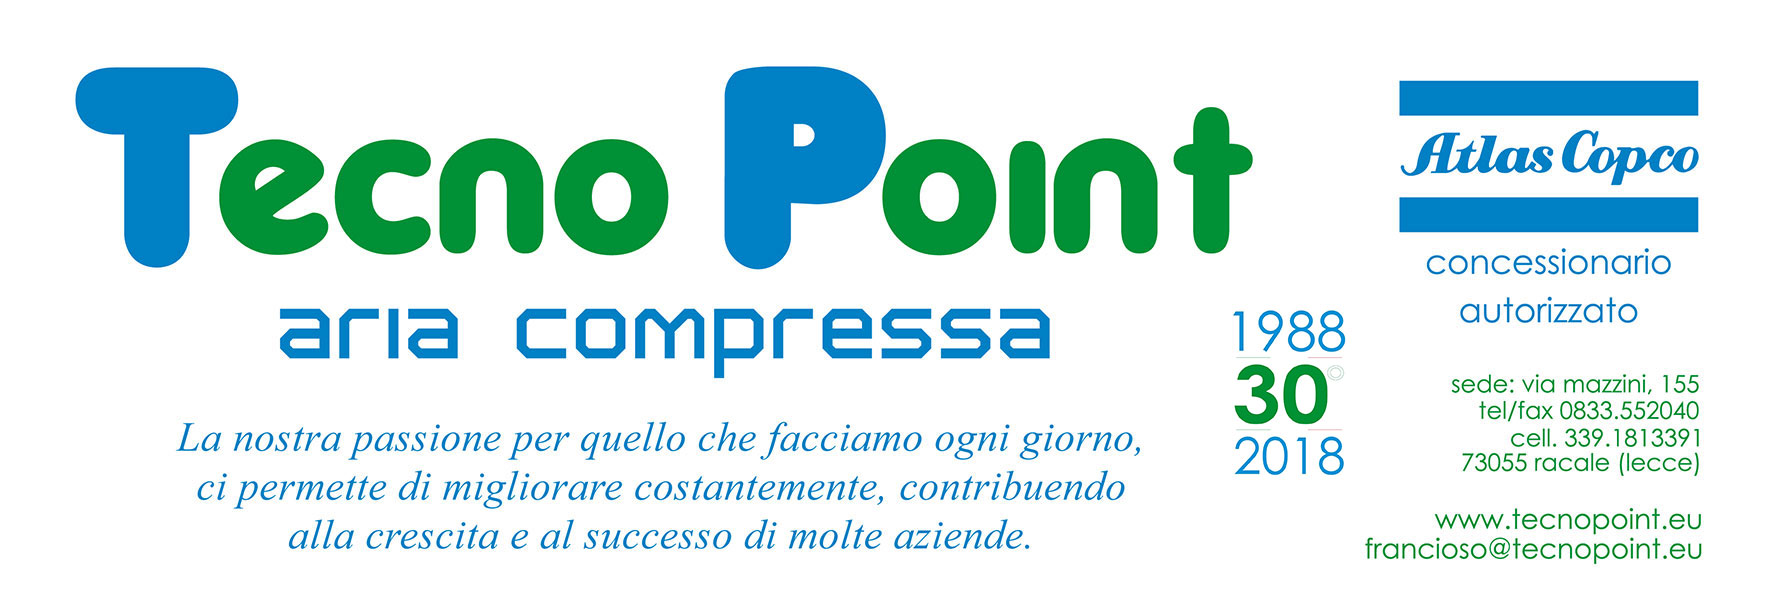 01-Tecnopoint-home